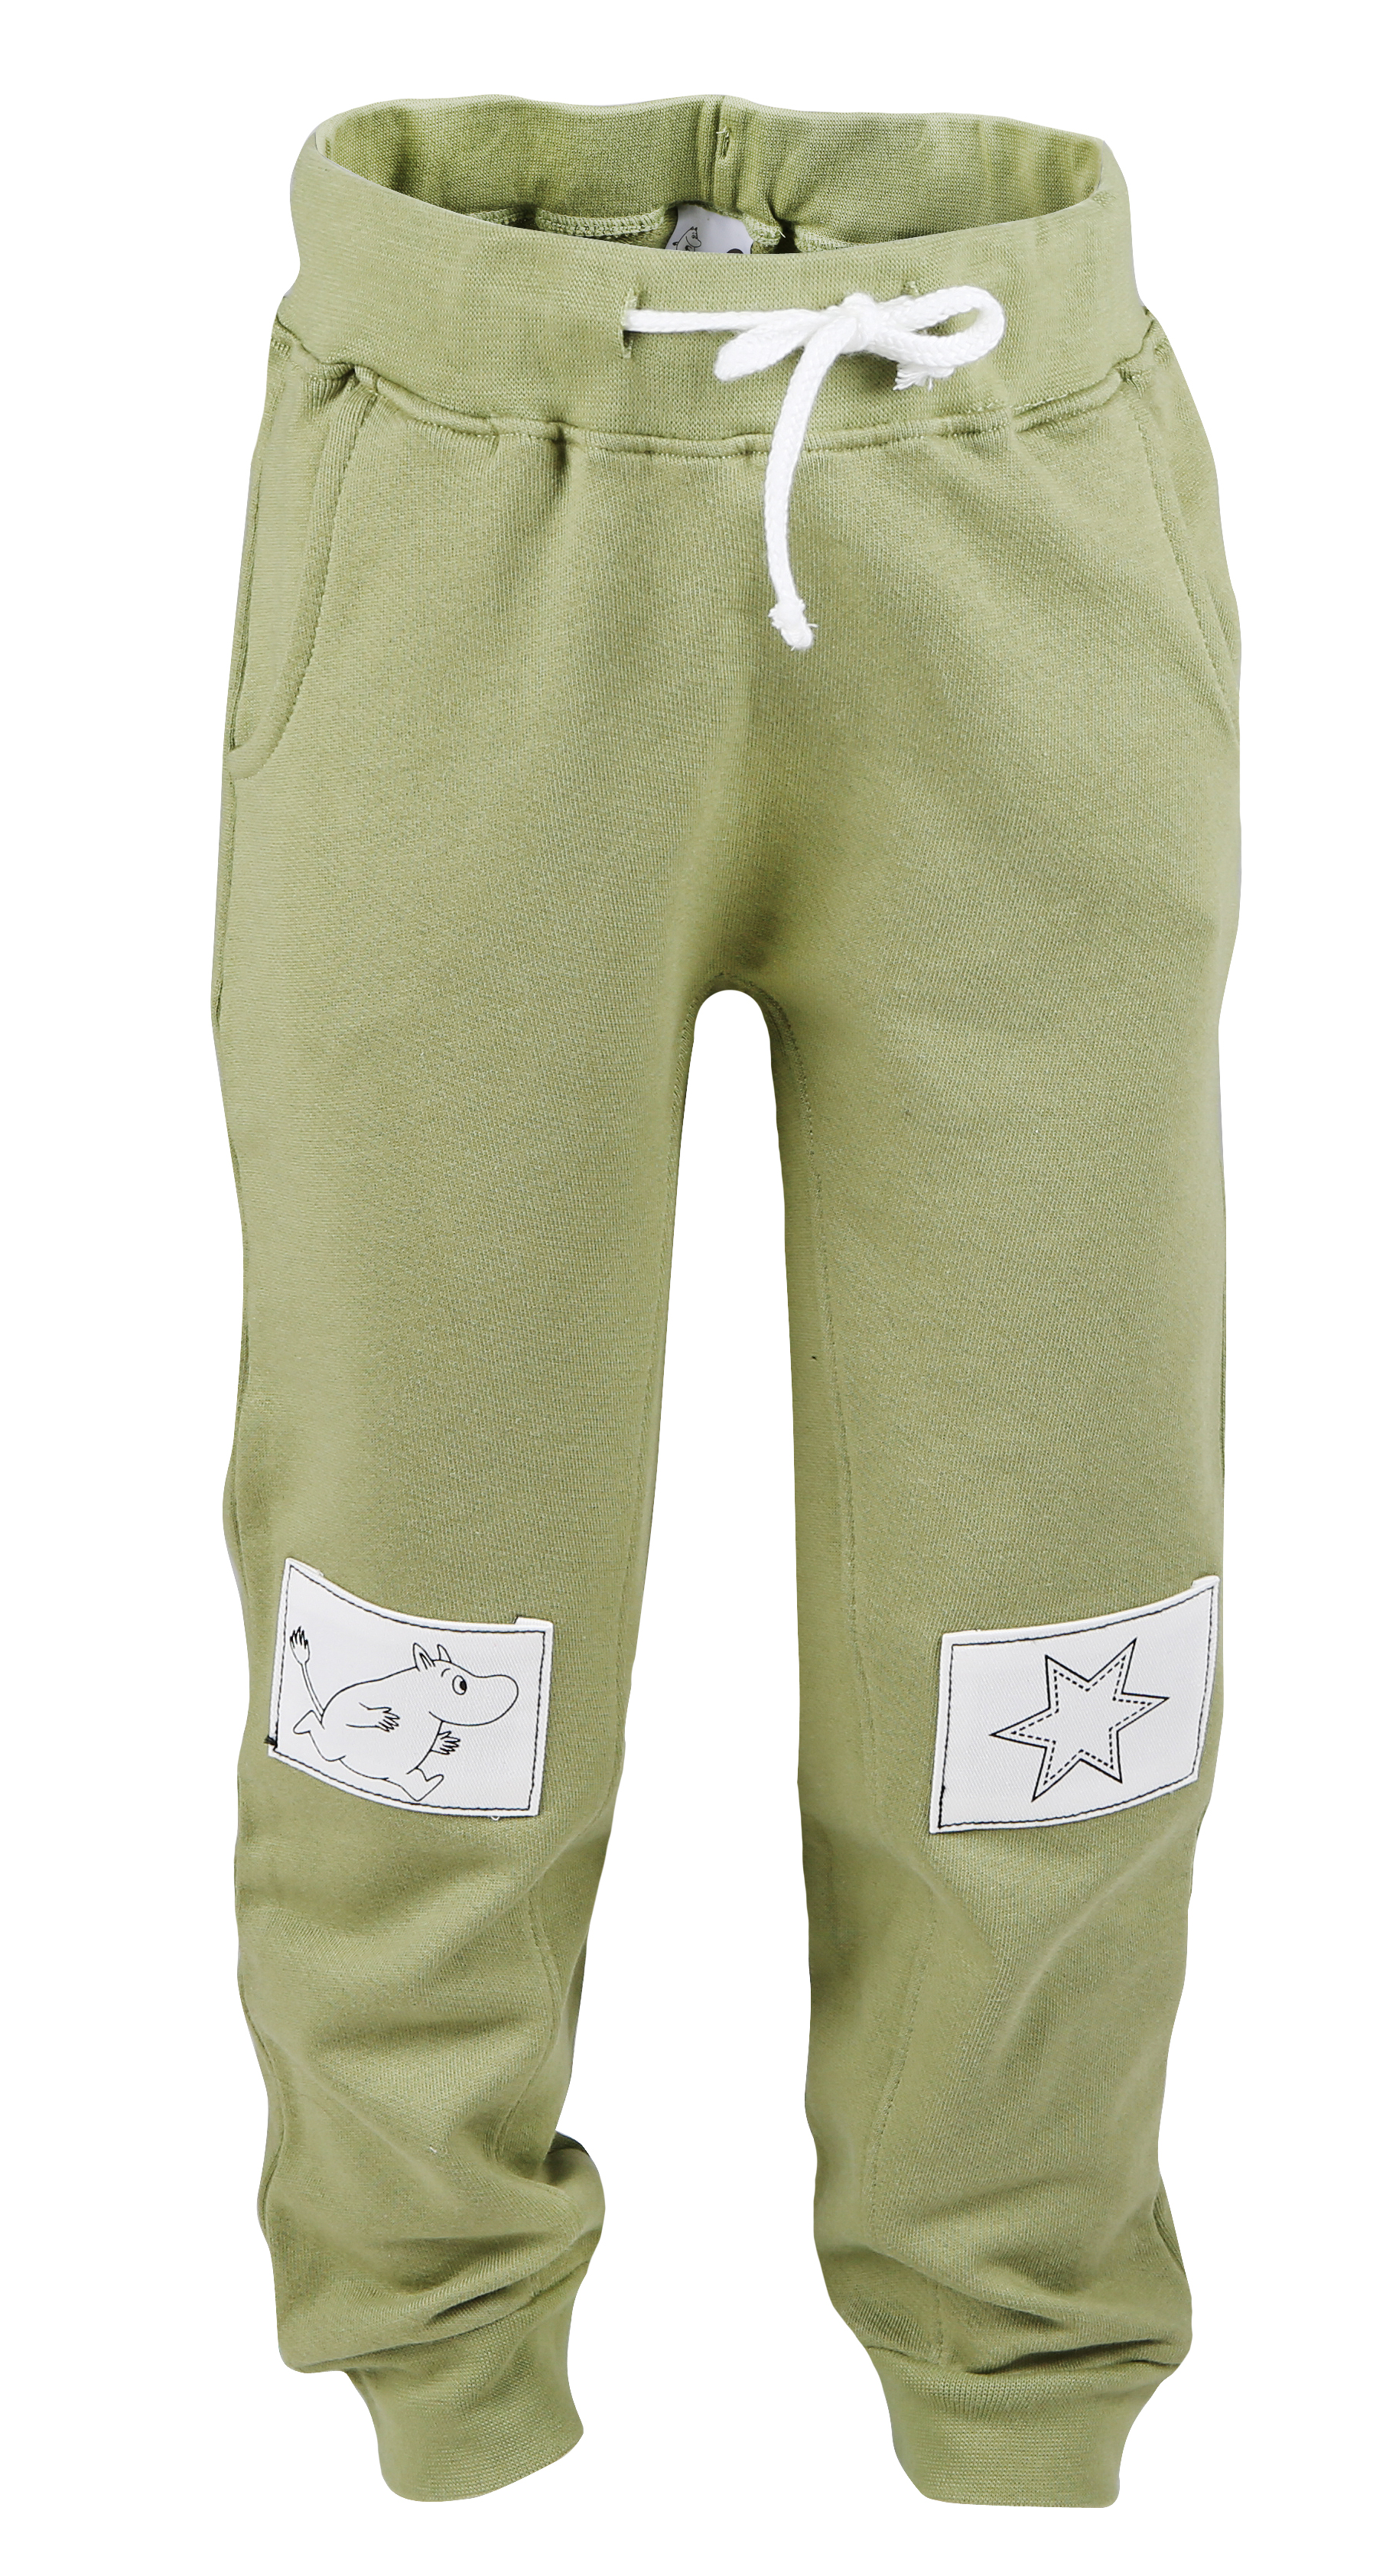 Martinex Moomin pants